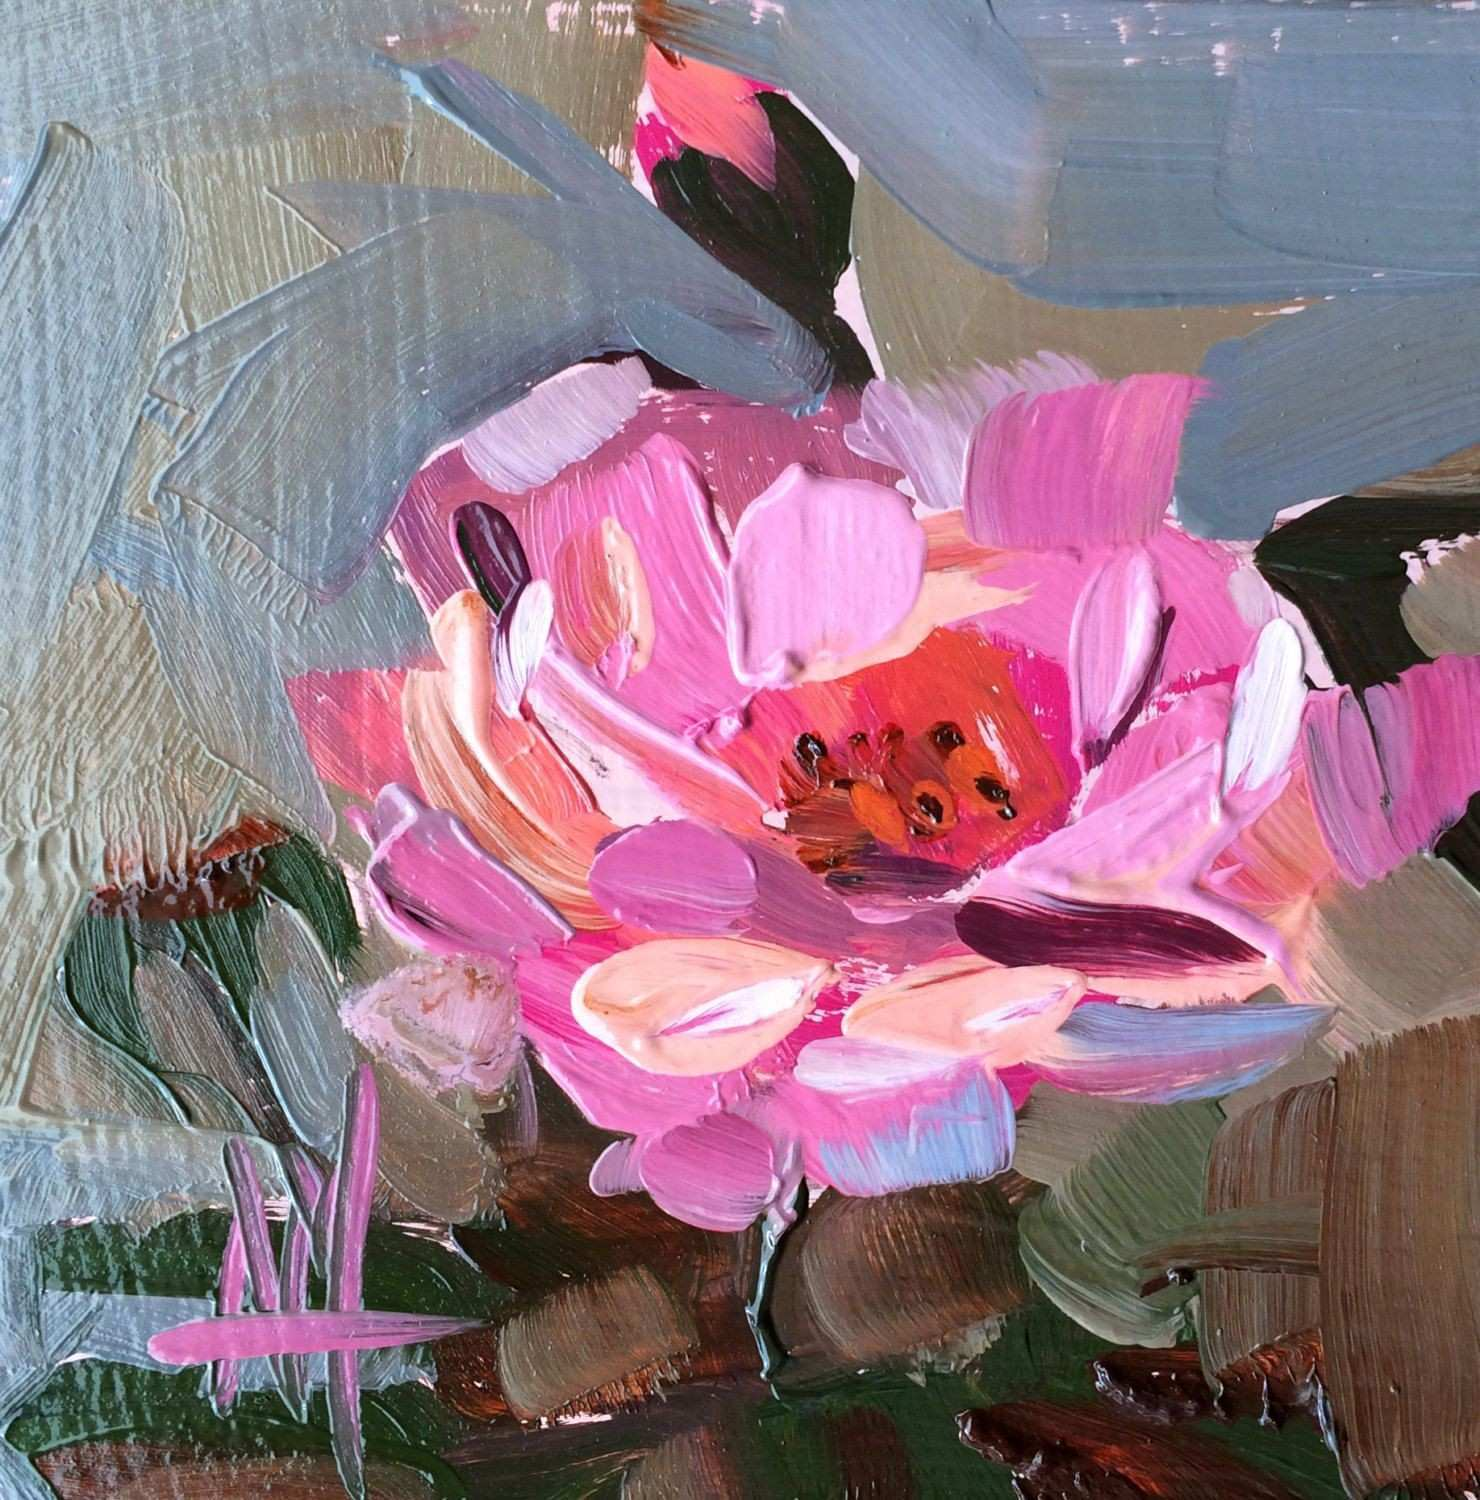 Country Rose Original Floral Oil Painting by Angela Moulton 4 x 4